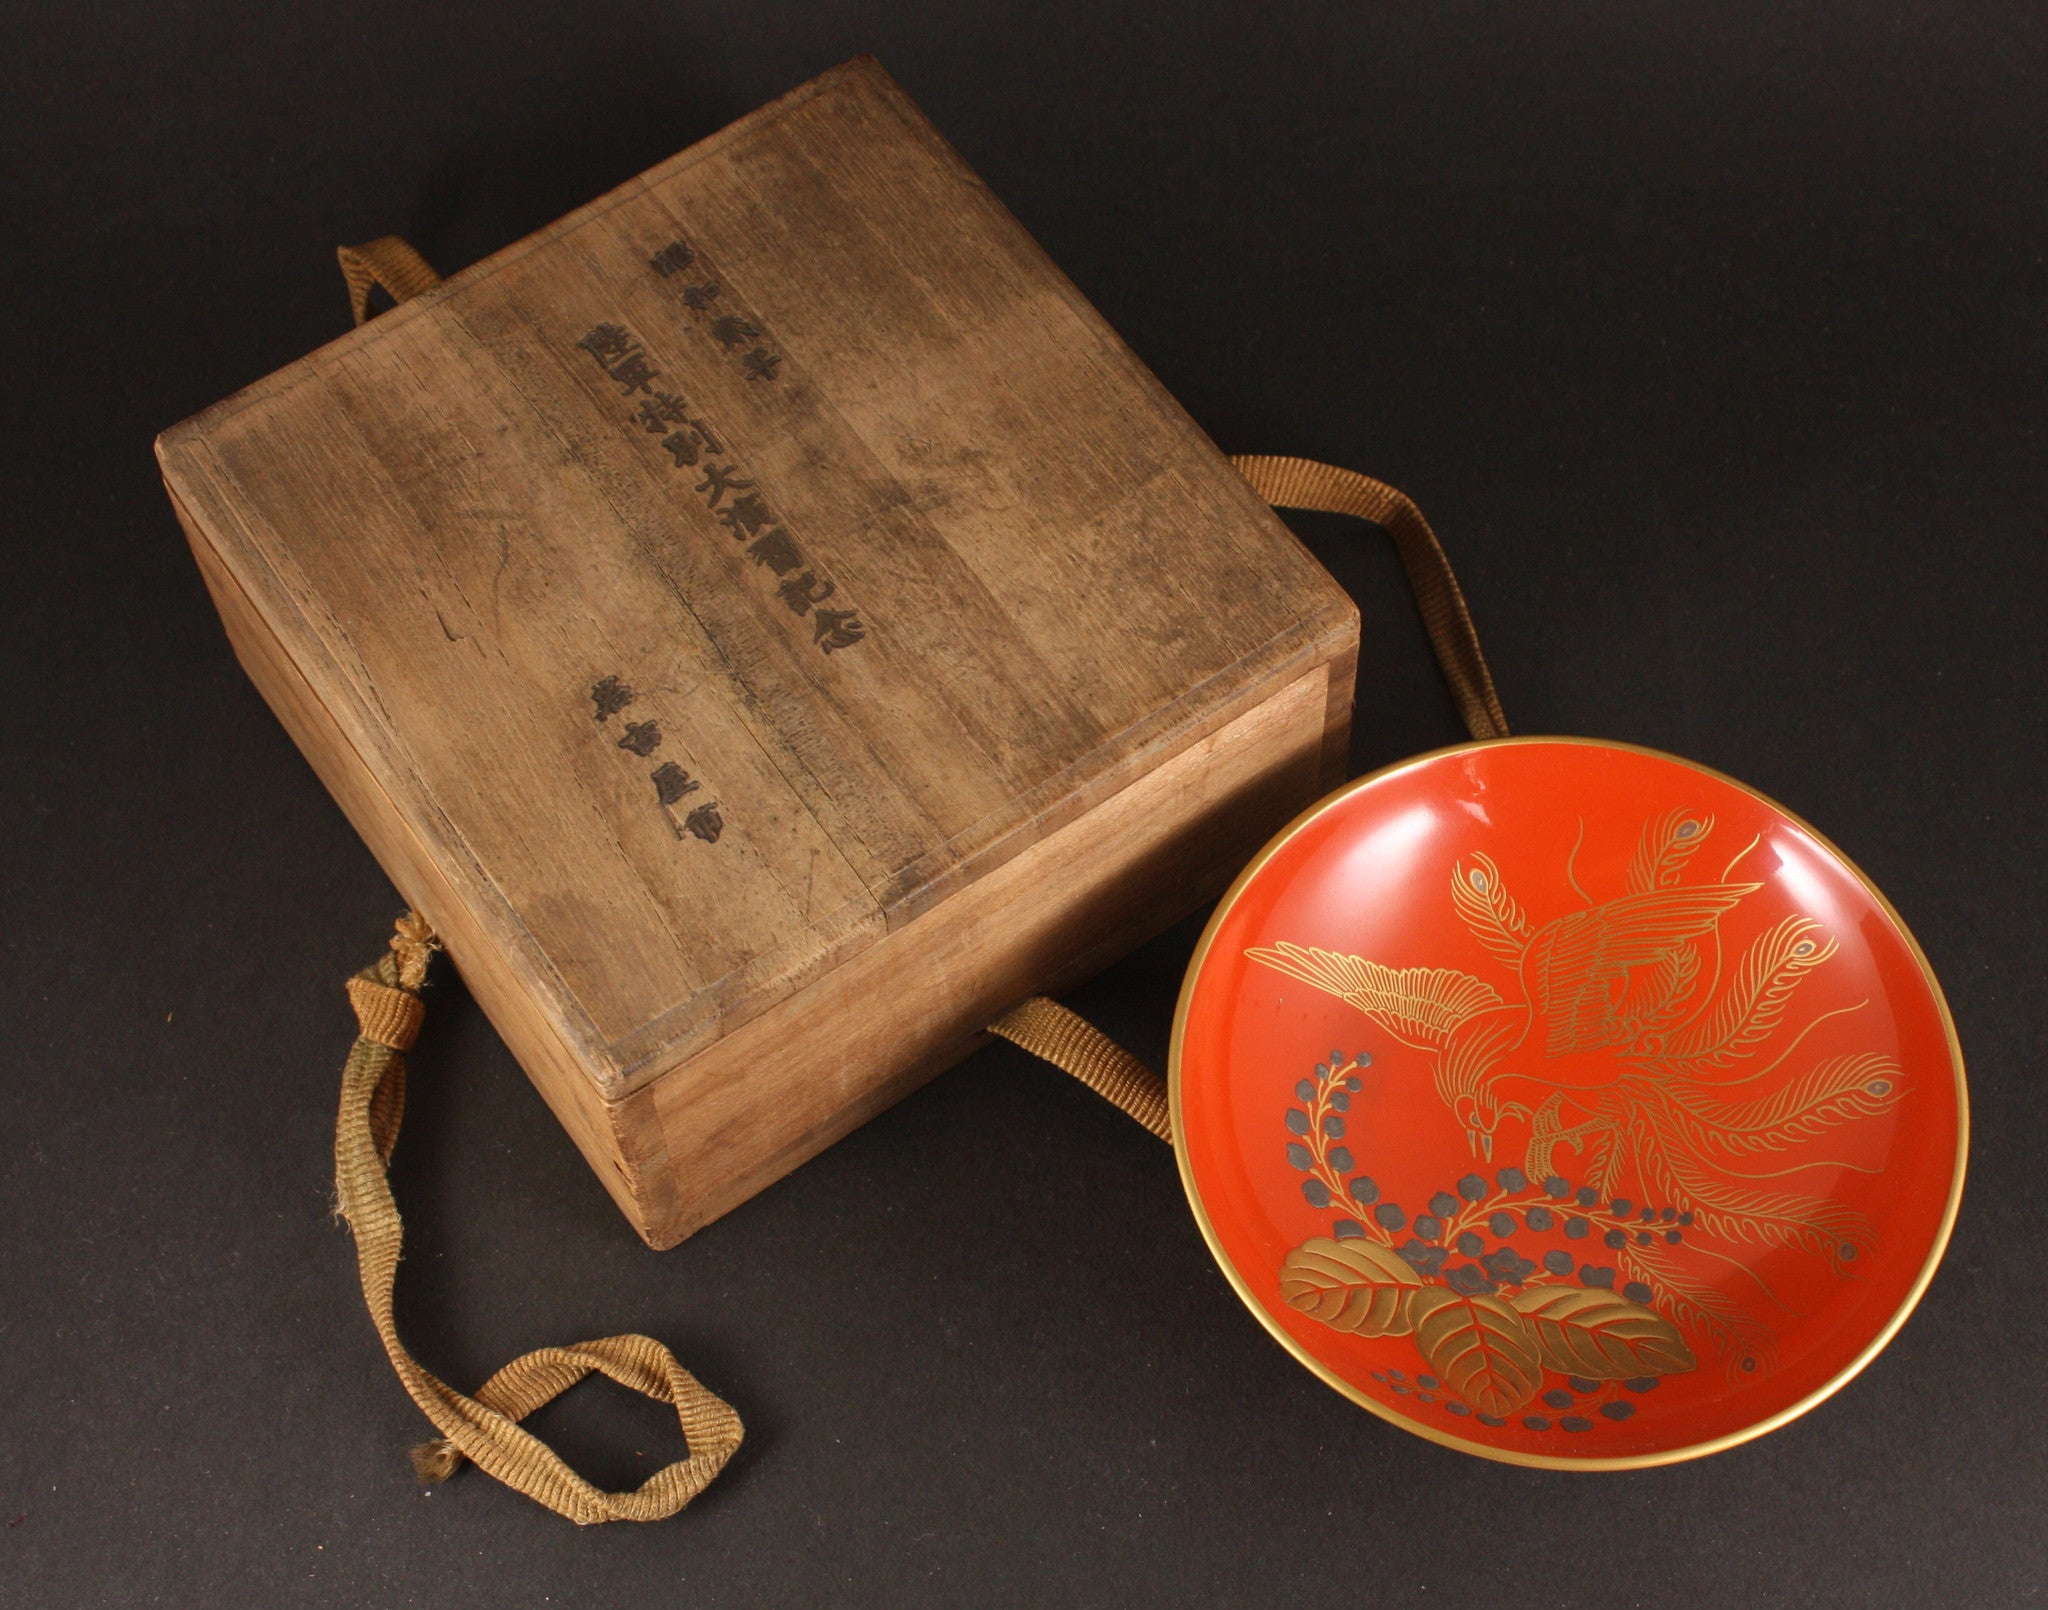 Antique Japanese Military 1927 Nagoya Special War Games Lacquer Army Sake Cup